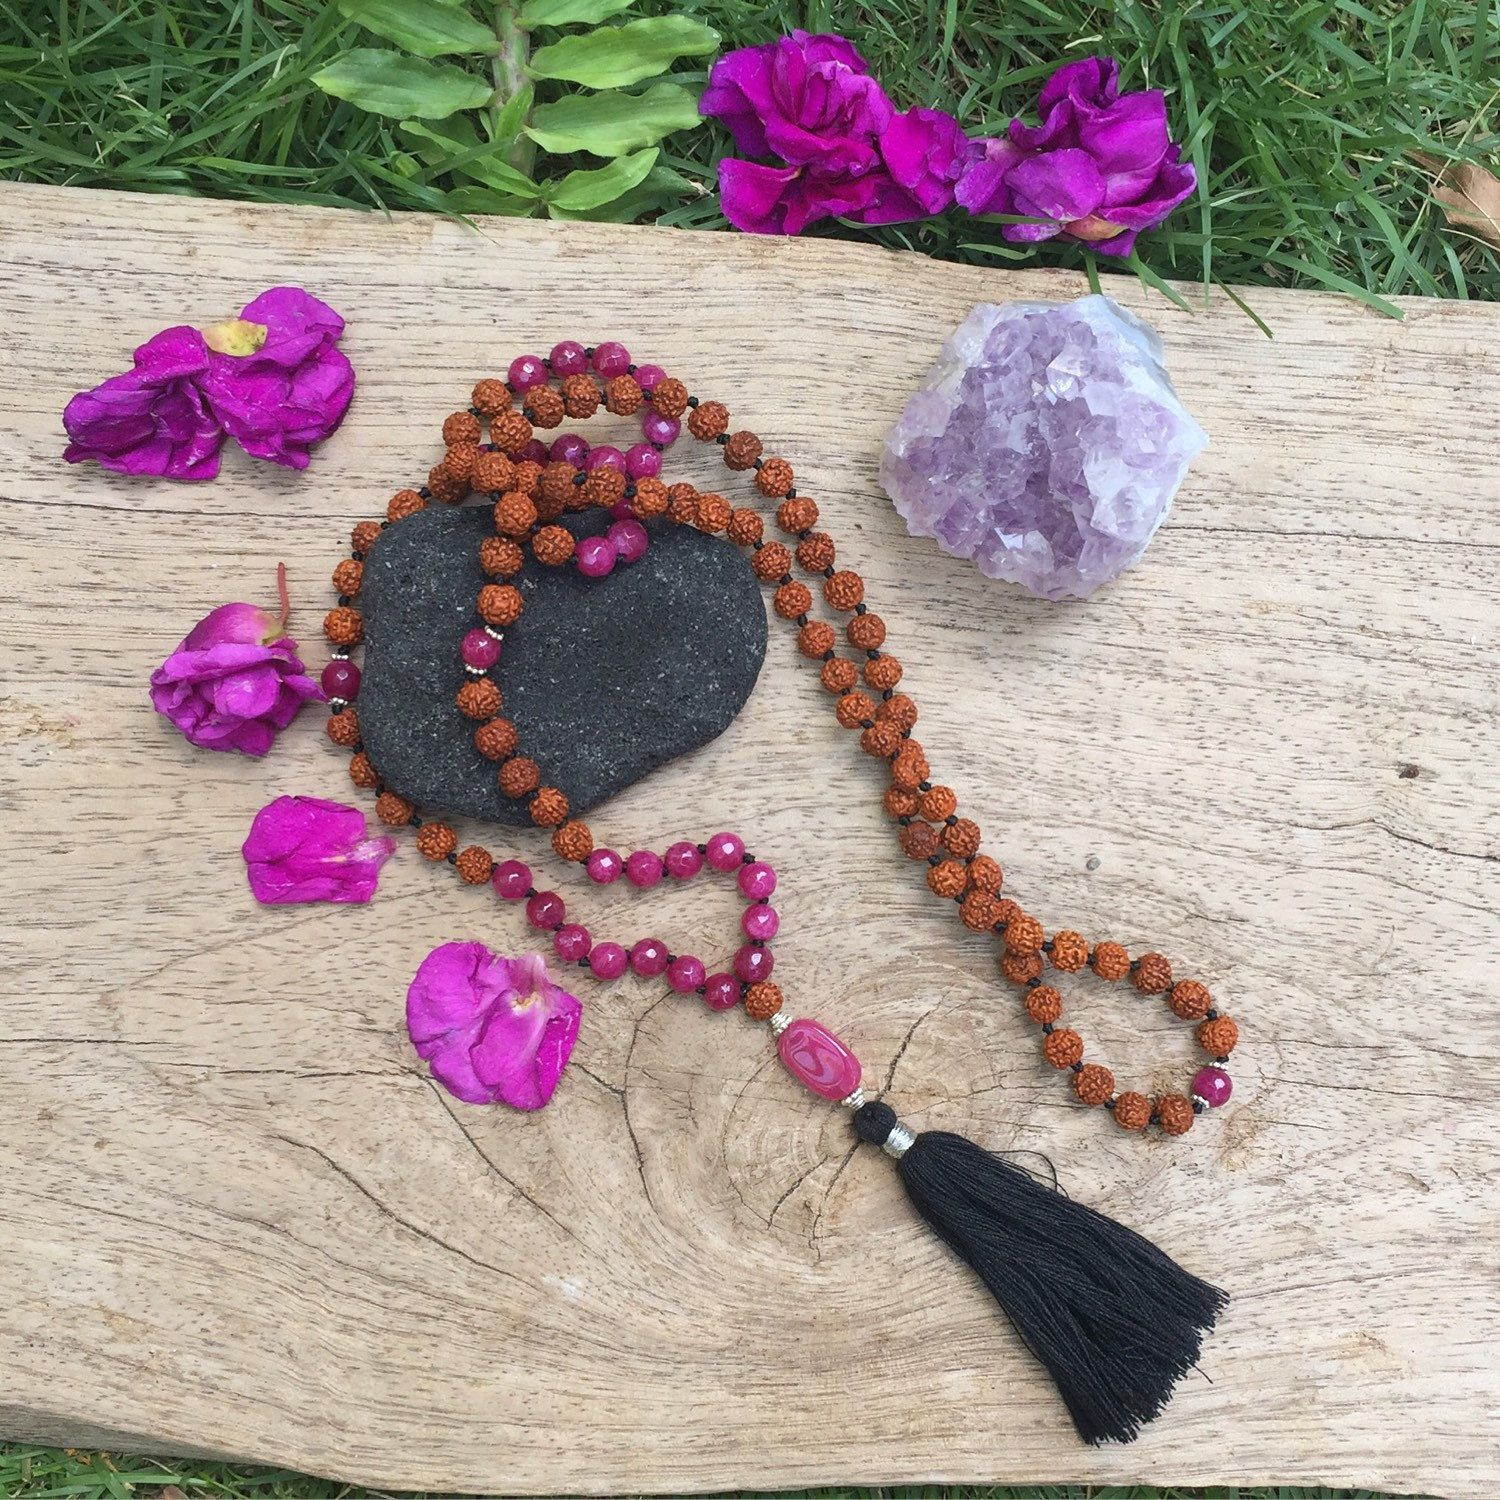 Ruby Sterling Silver Mala Necklace With Rudraksha Prayer Beads